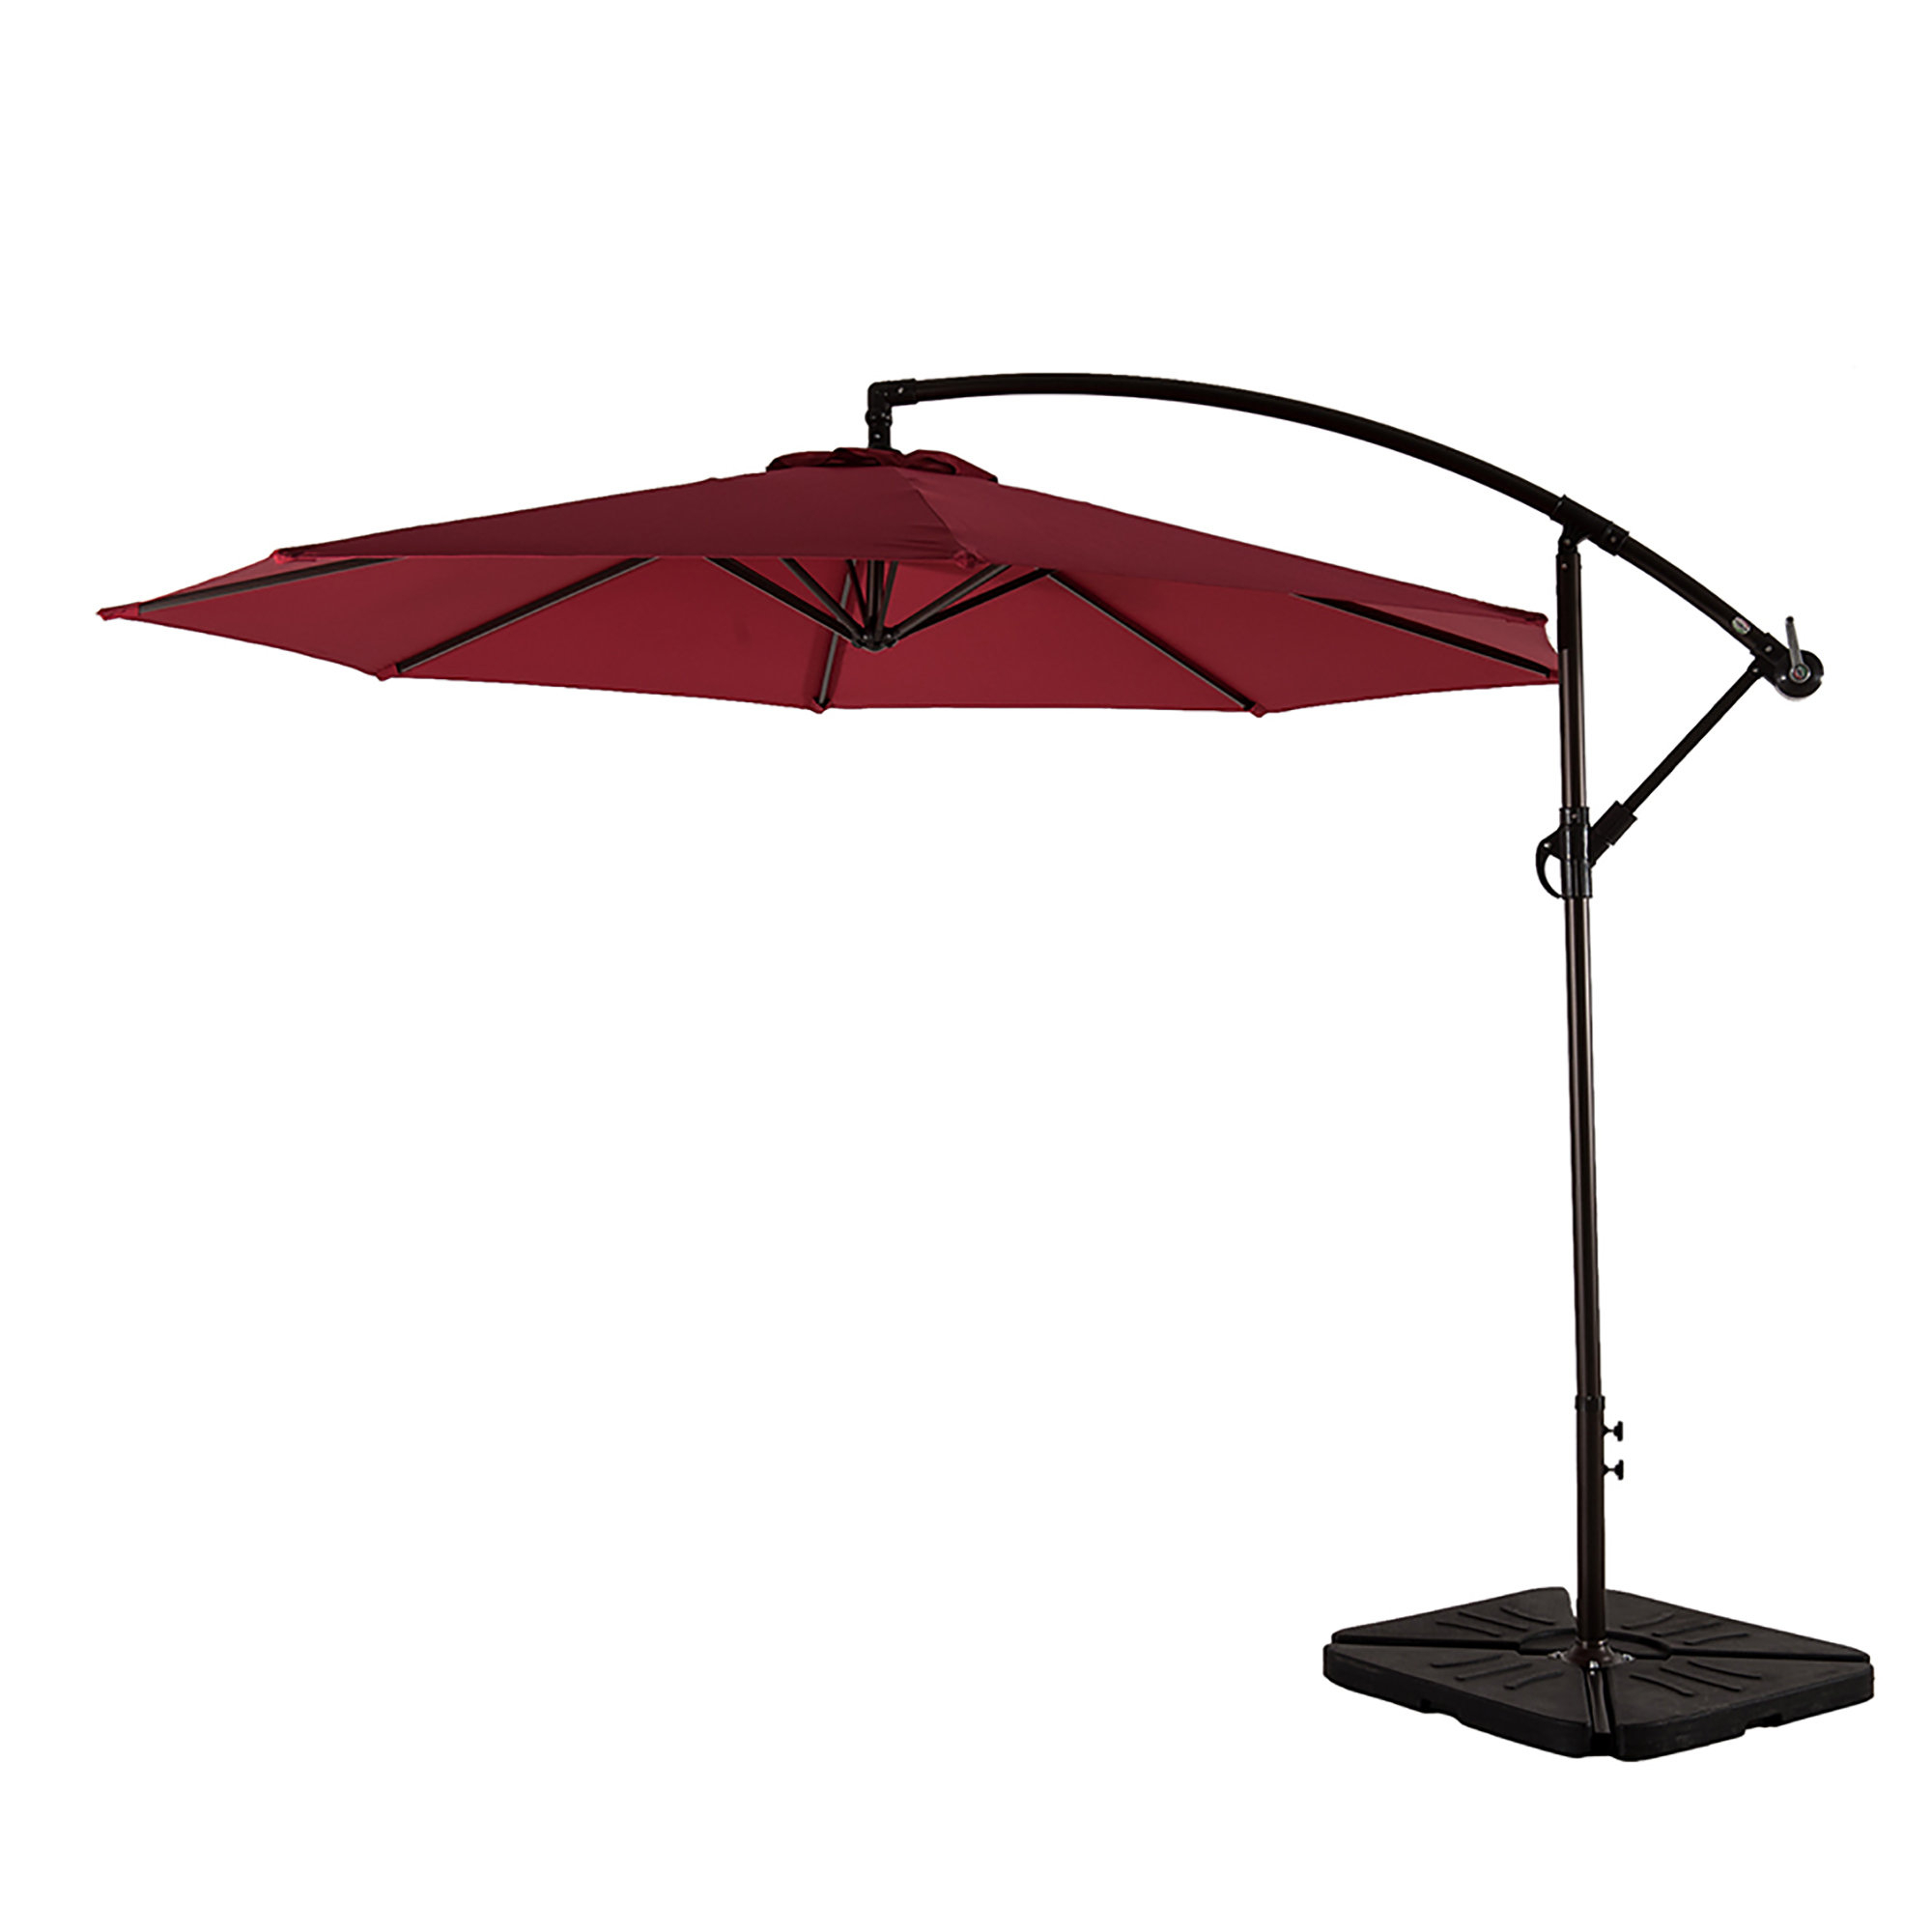 Karr 10' Cantilever Umbrella Intended For 2019 Bormann Cantilever Umbrellas (Gallery 9 of 20)